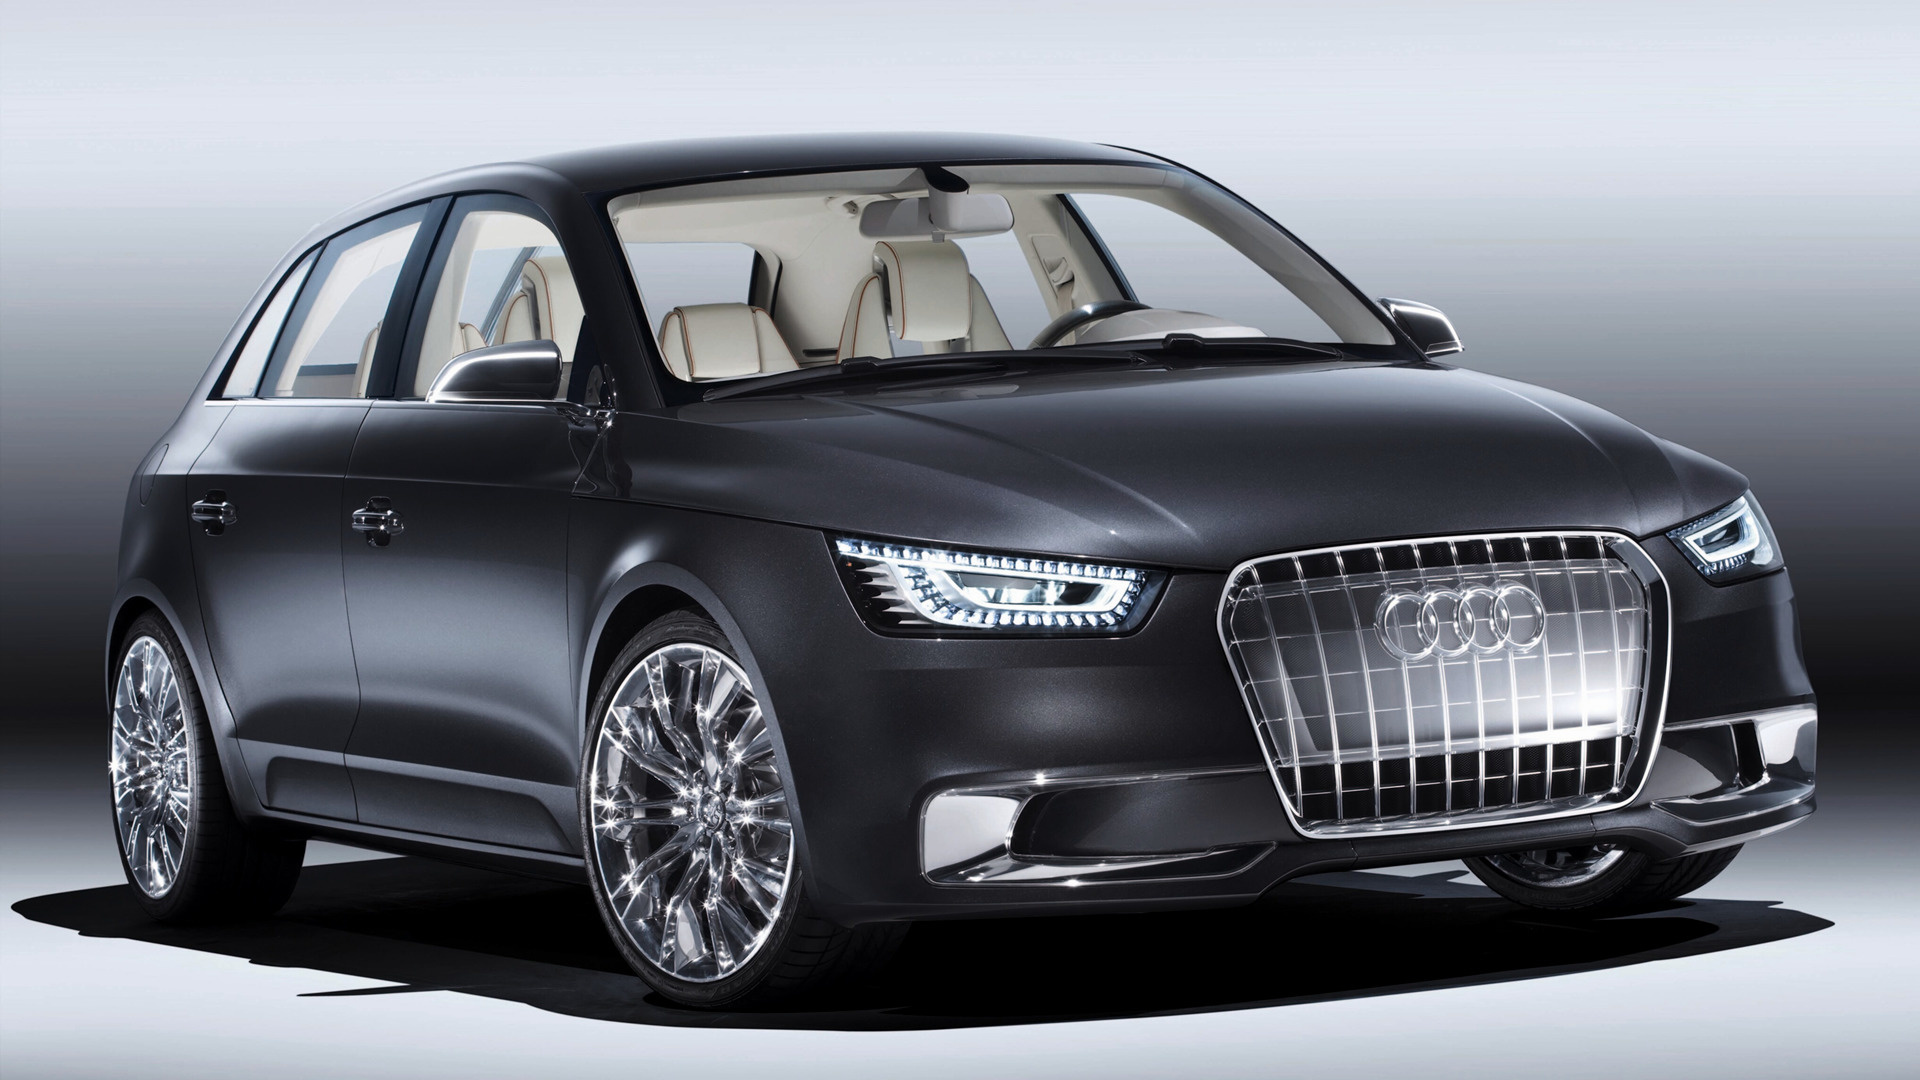 2008 audi a1 sportback concept wallpapers and hd images. Black Bedroom Furniture Sets. Home Design Ideas